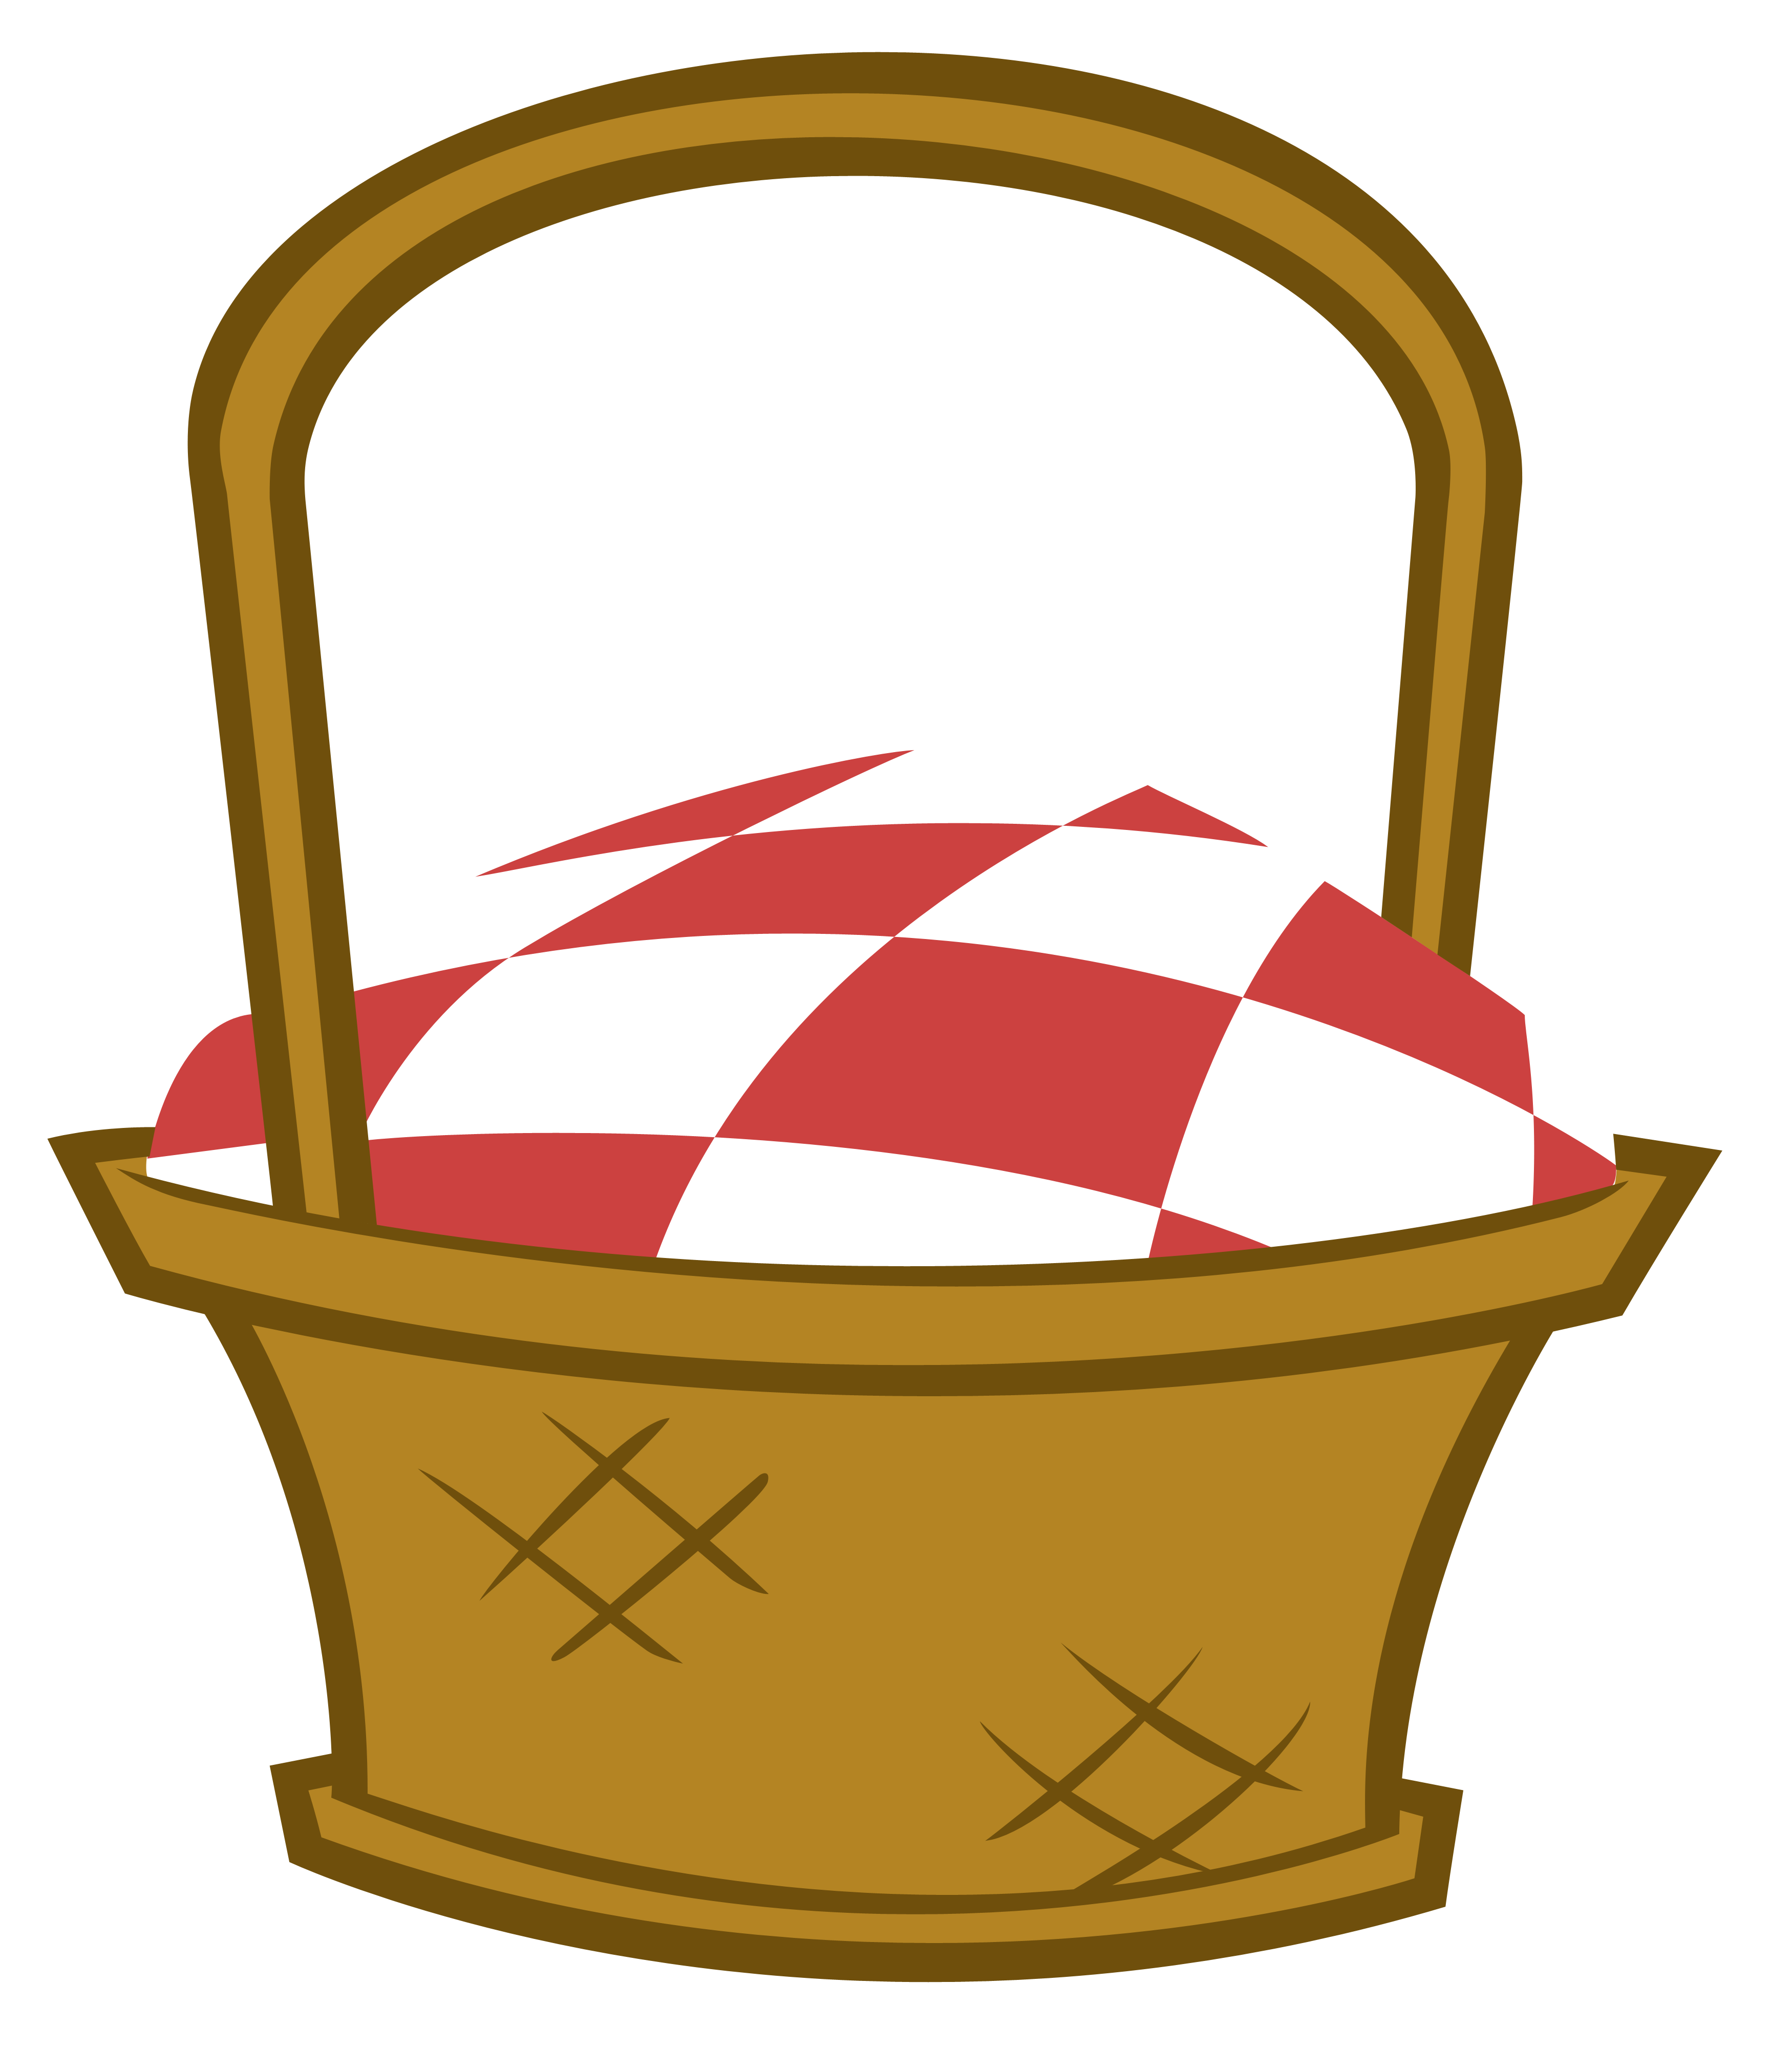 png free stock A b ea bdd. Basket clipart